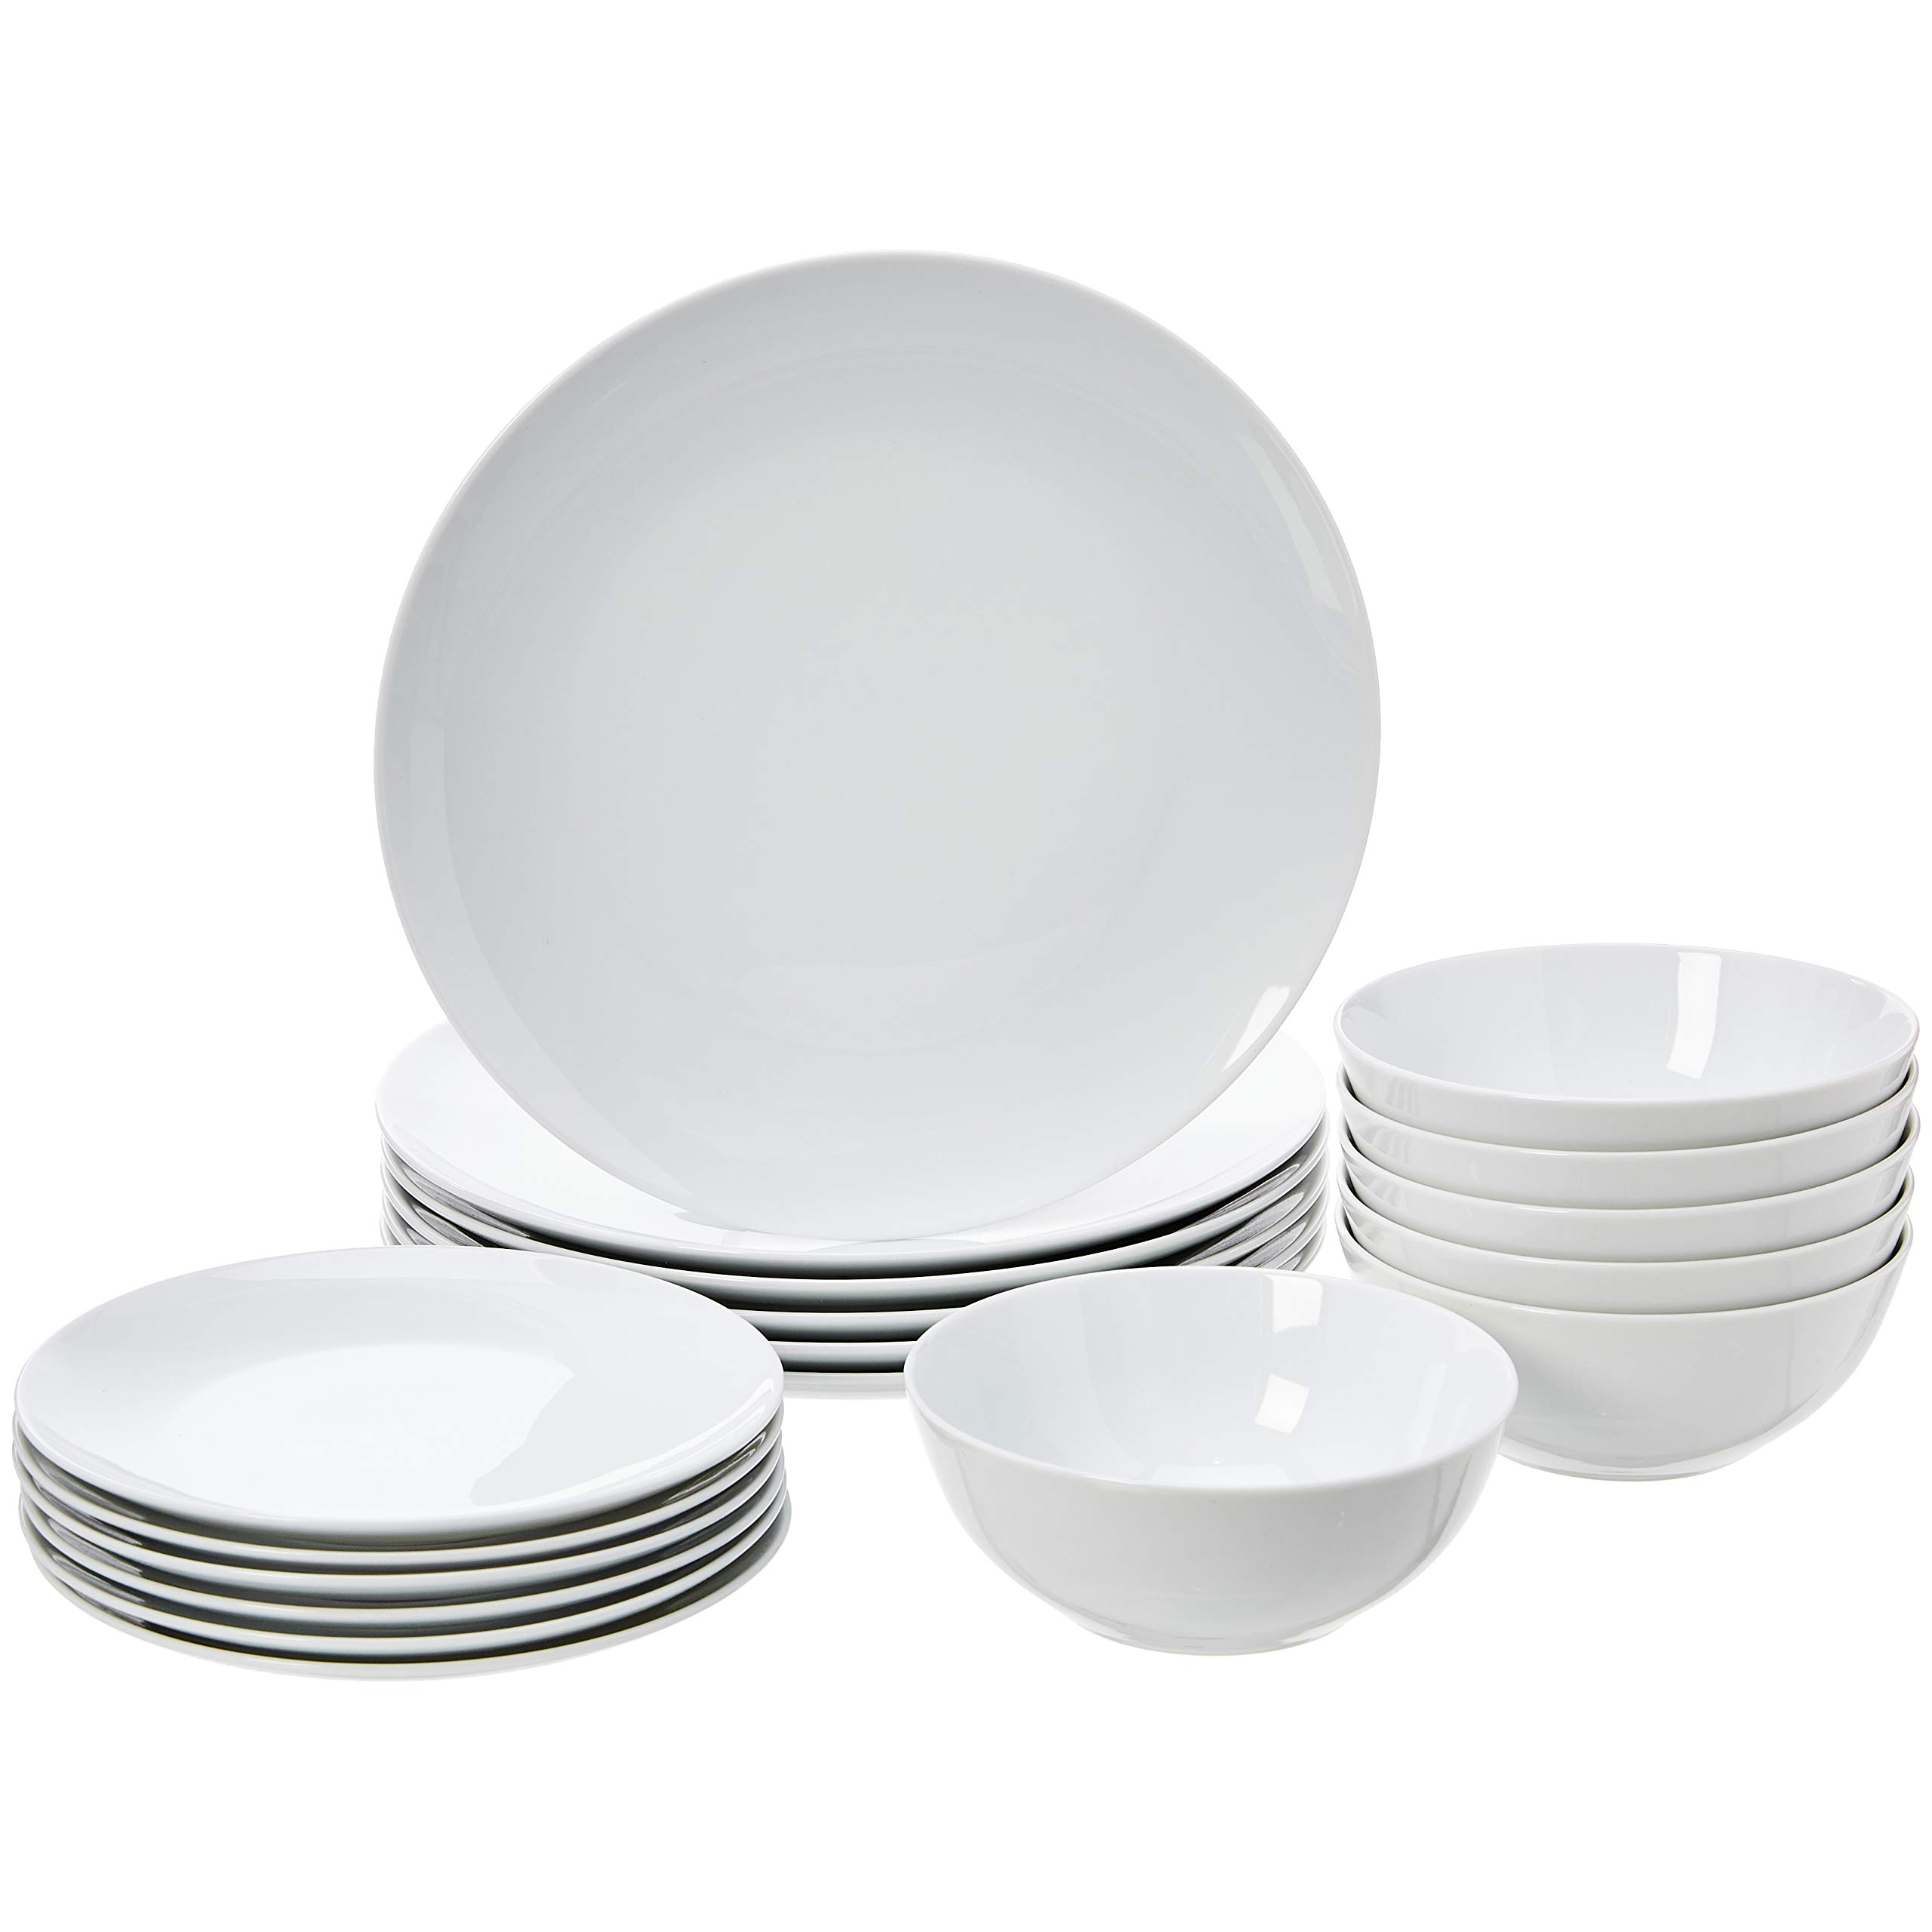 AmazonBasics 18-Piece Kitchen Dinnerware Set, Dishes, Bowls, Service for 6, White Porcelain Coupe by AmazonBasics (Image #1)